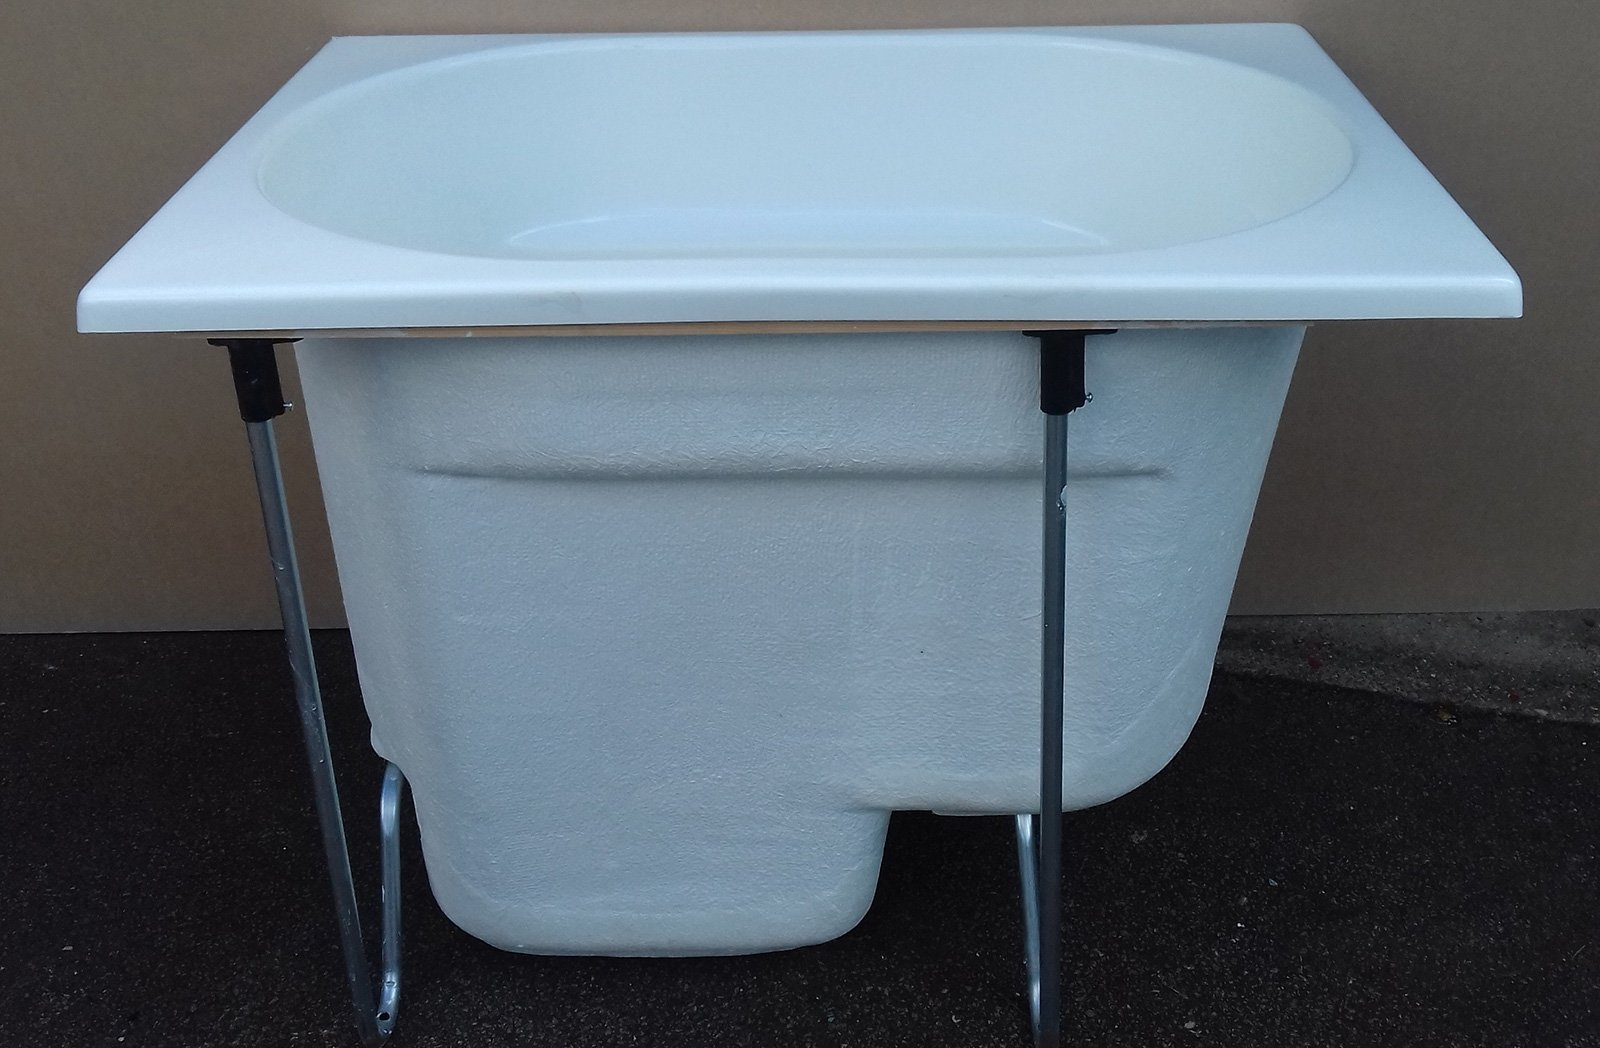 The Showa Bath - Compact Range Deep Soaking Bath